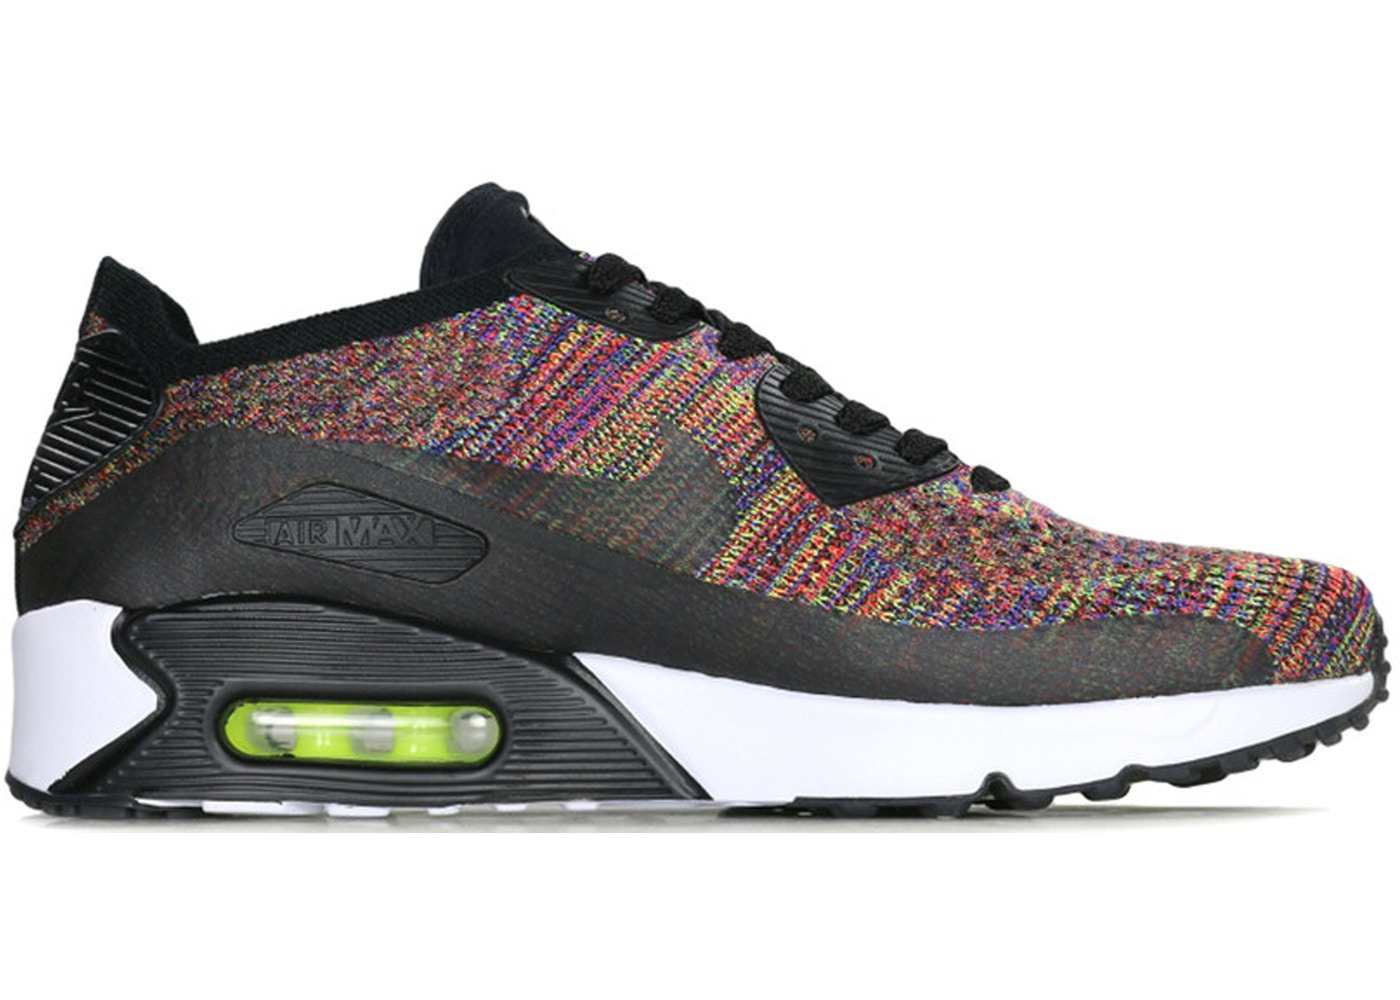 ecb4d52a089 Air Max 90 Ultra Flyknit 2.0 Multi-Color - 875943-002